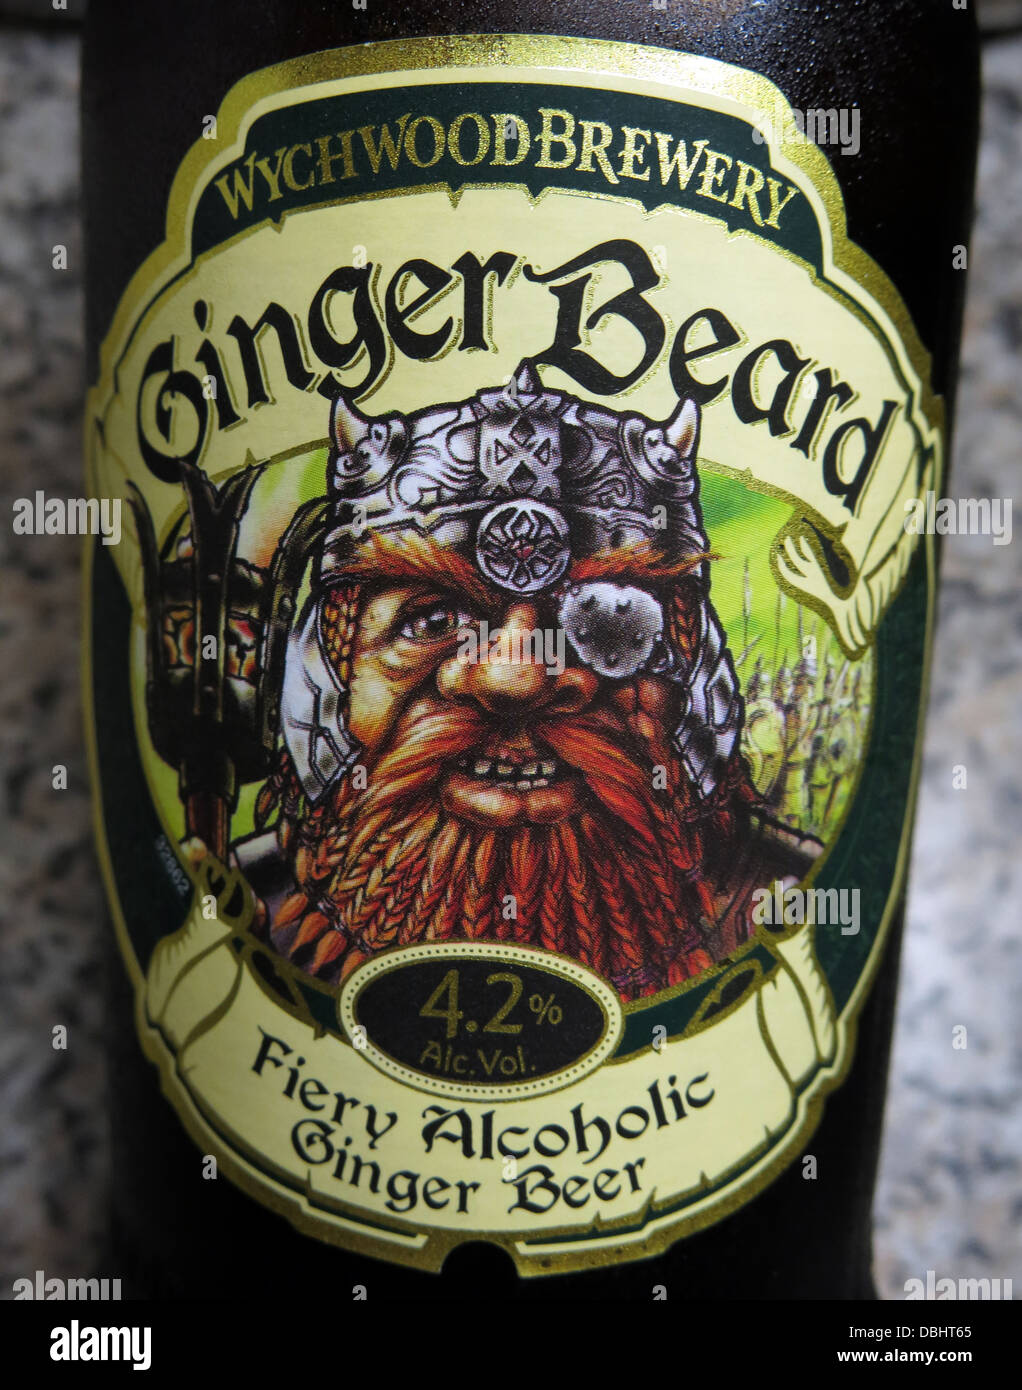 Label from the Wychwood Brewery Witney Ginger Beard , a 4.2% fiery Alcoholic ginger beer. Brewed in England , Great Stock Photo